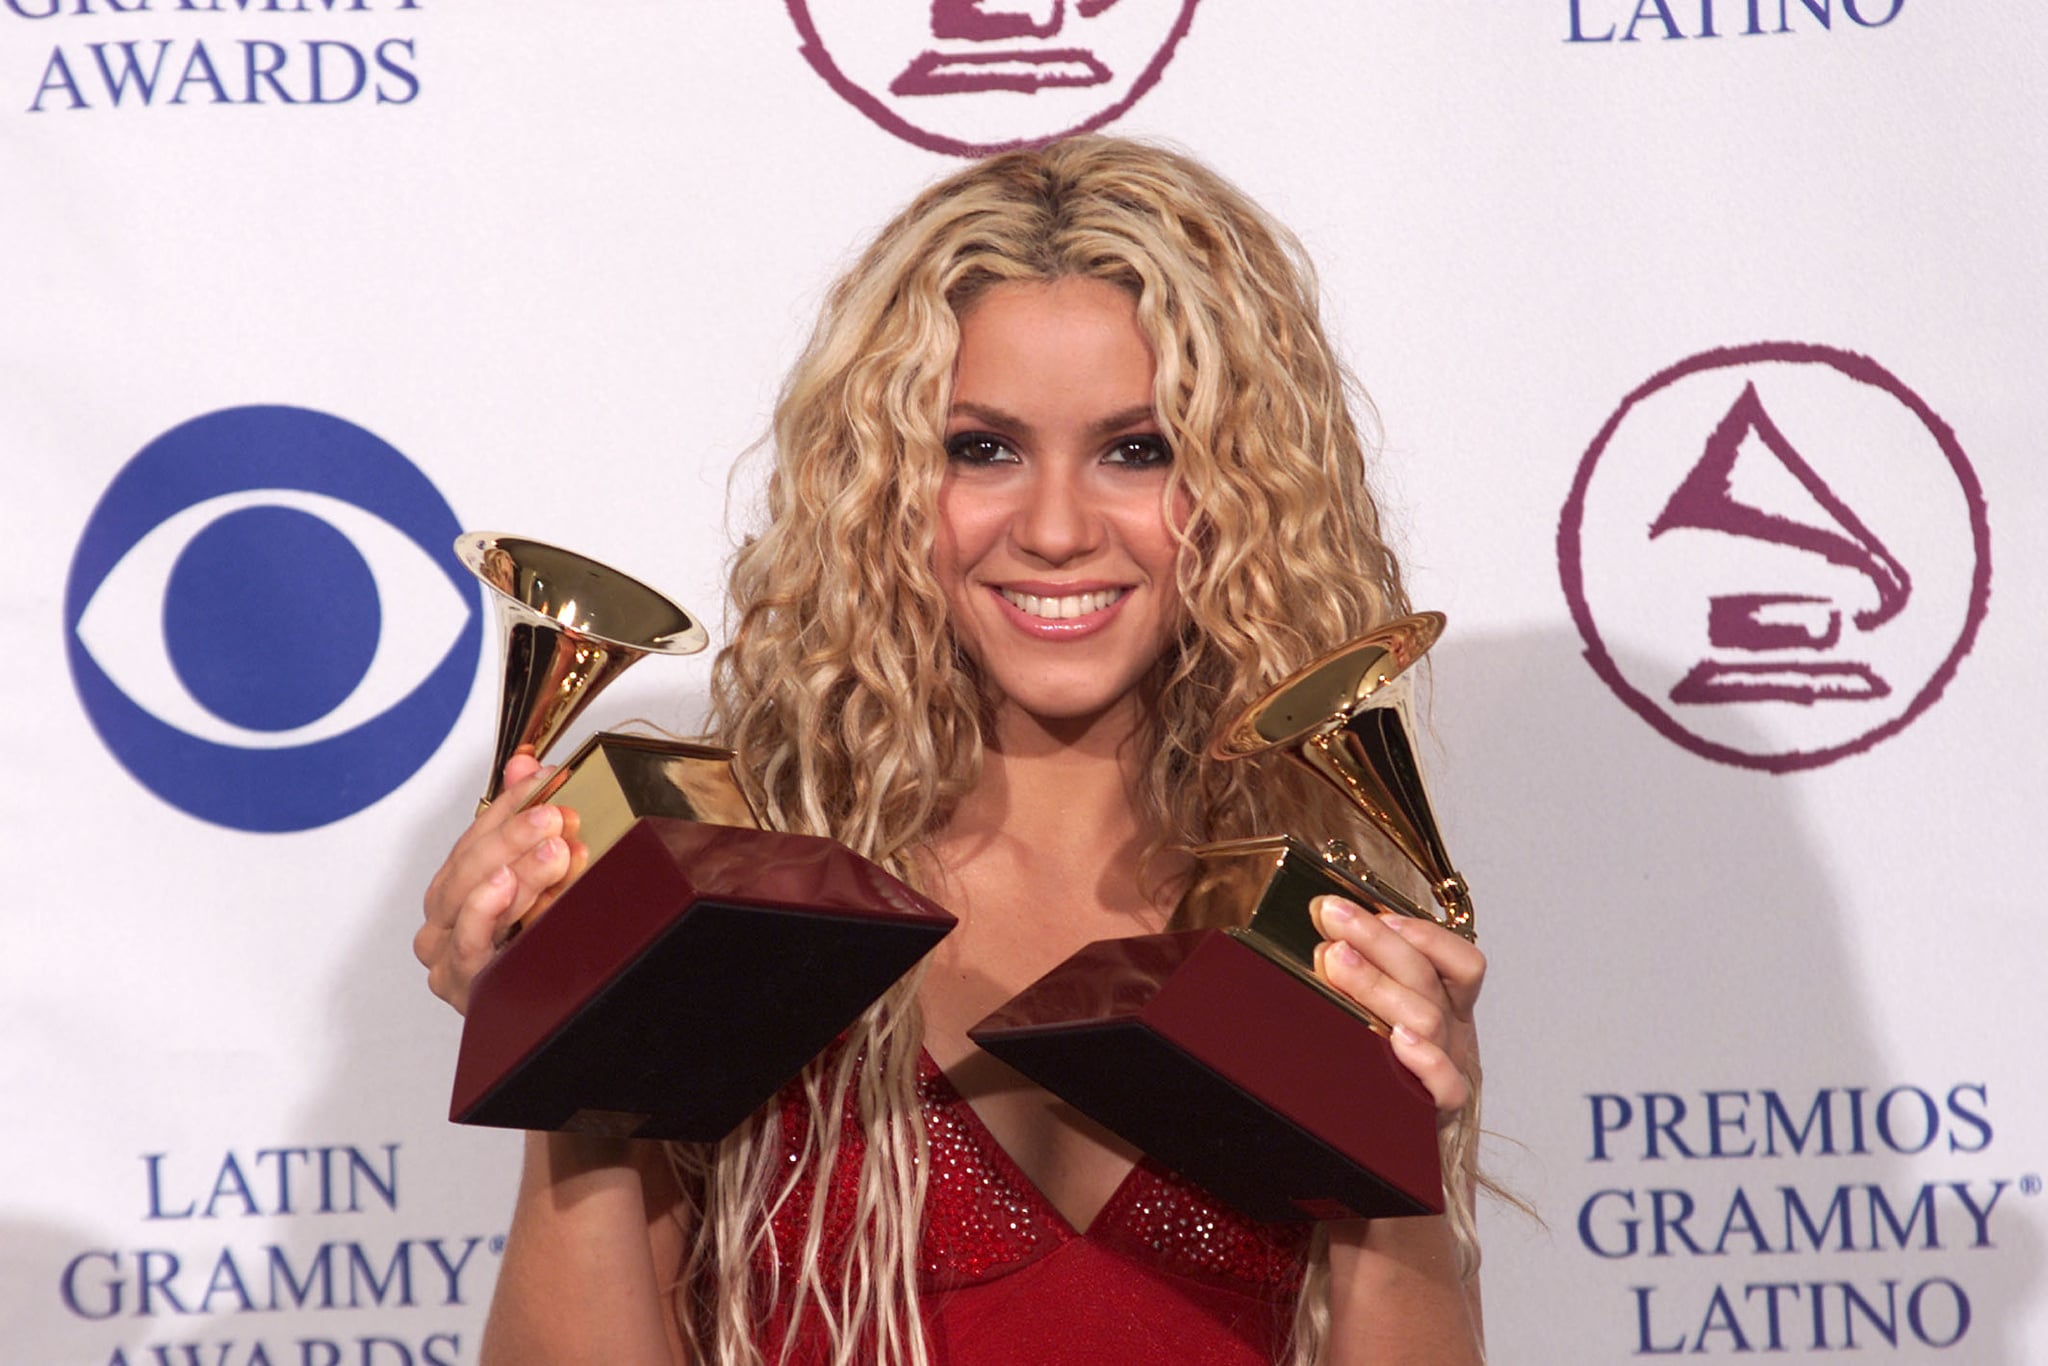 Shakira poses with the two awards she won at the 1st Annual Latin Grammy Awards broadcast on Wednesday, September 13, 2000 at the Staples Center in Los Angeles, CA. Photo credit: Scott Gries/ImageDirect